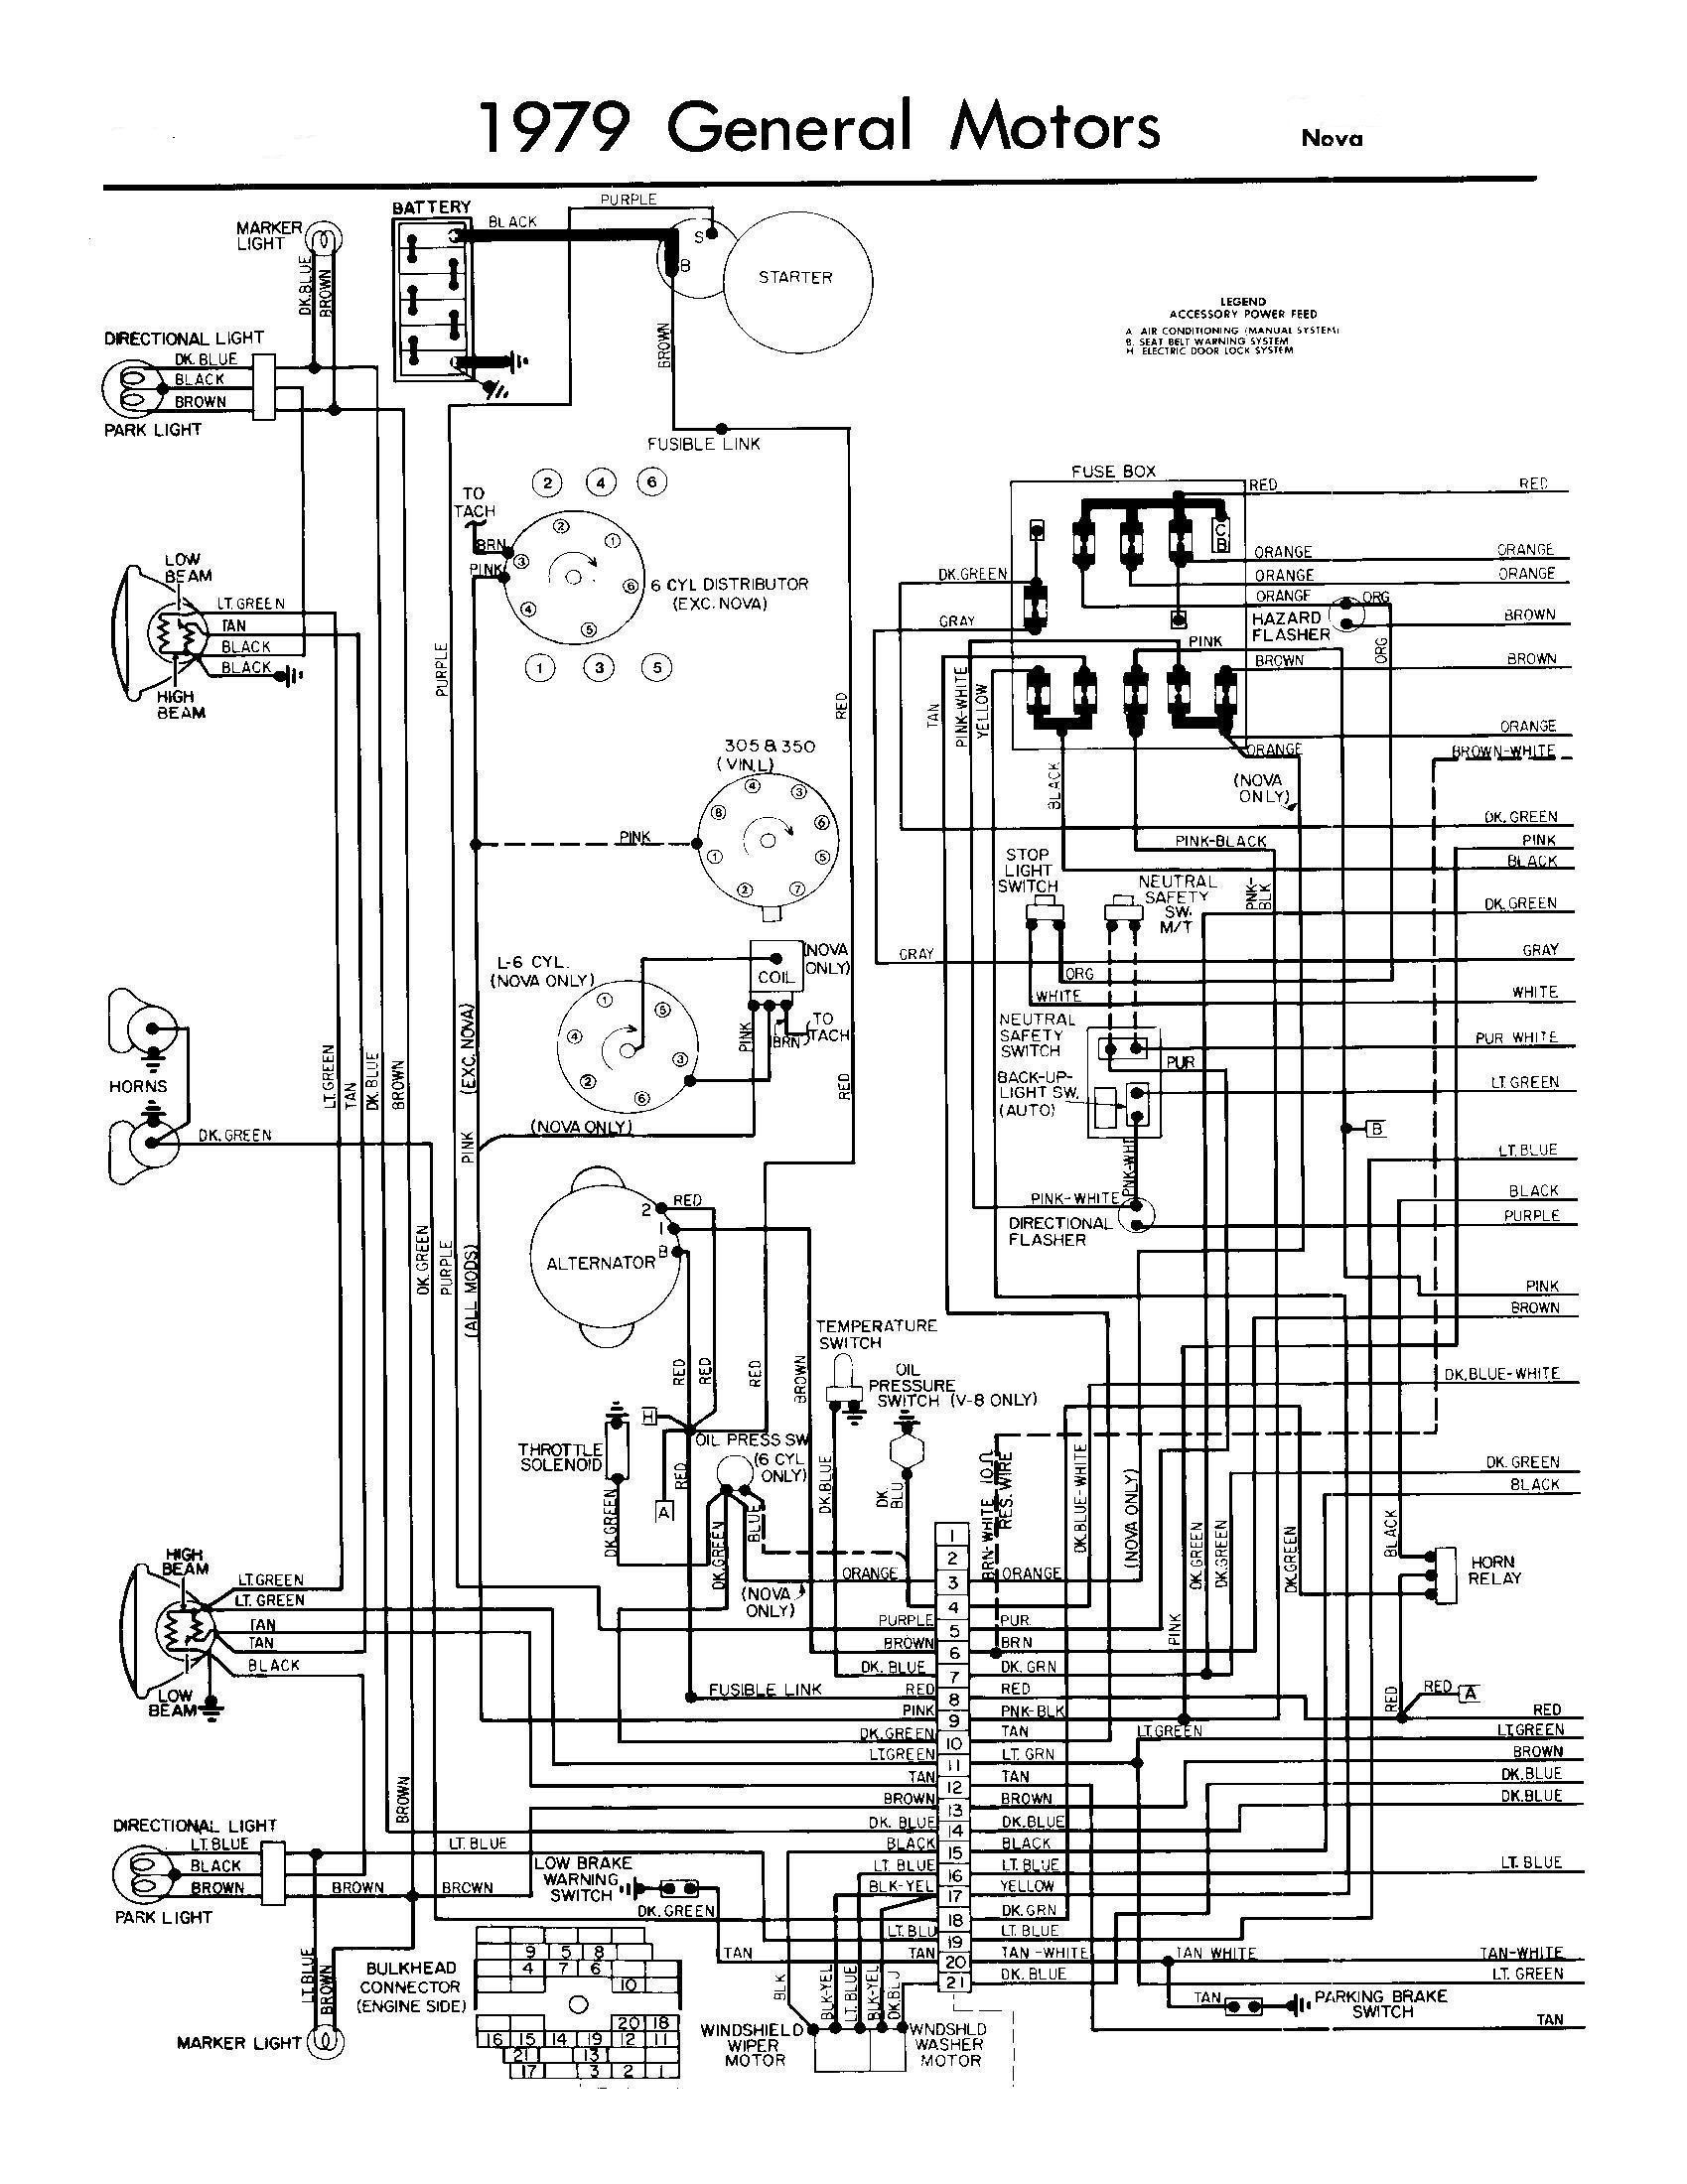 moreover 1975 winnebago wiring diagrams on winnebago fuse box rh marstudios co 2014 Winnebago Wiring Diagrams Winnebago 1984 Electrical Diagrams